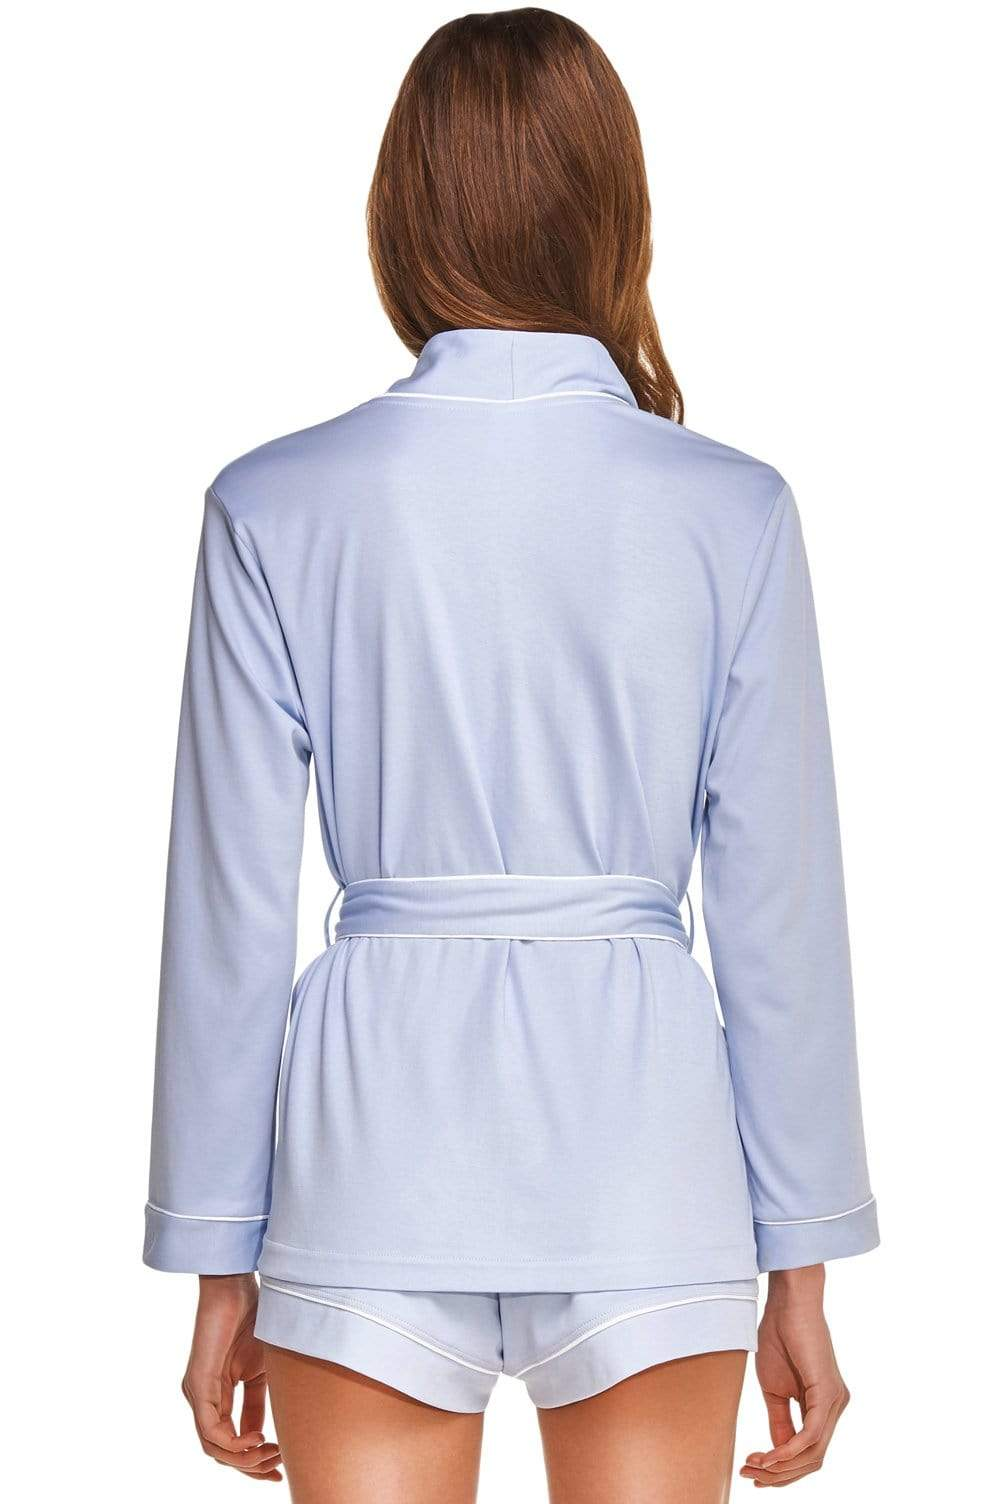 Slow Nature® Essentials Sleep & Loungewear Wrap SHIRT. Organic Cotton. sustainable fashion ethical fashion